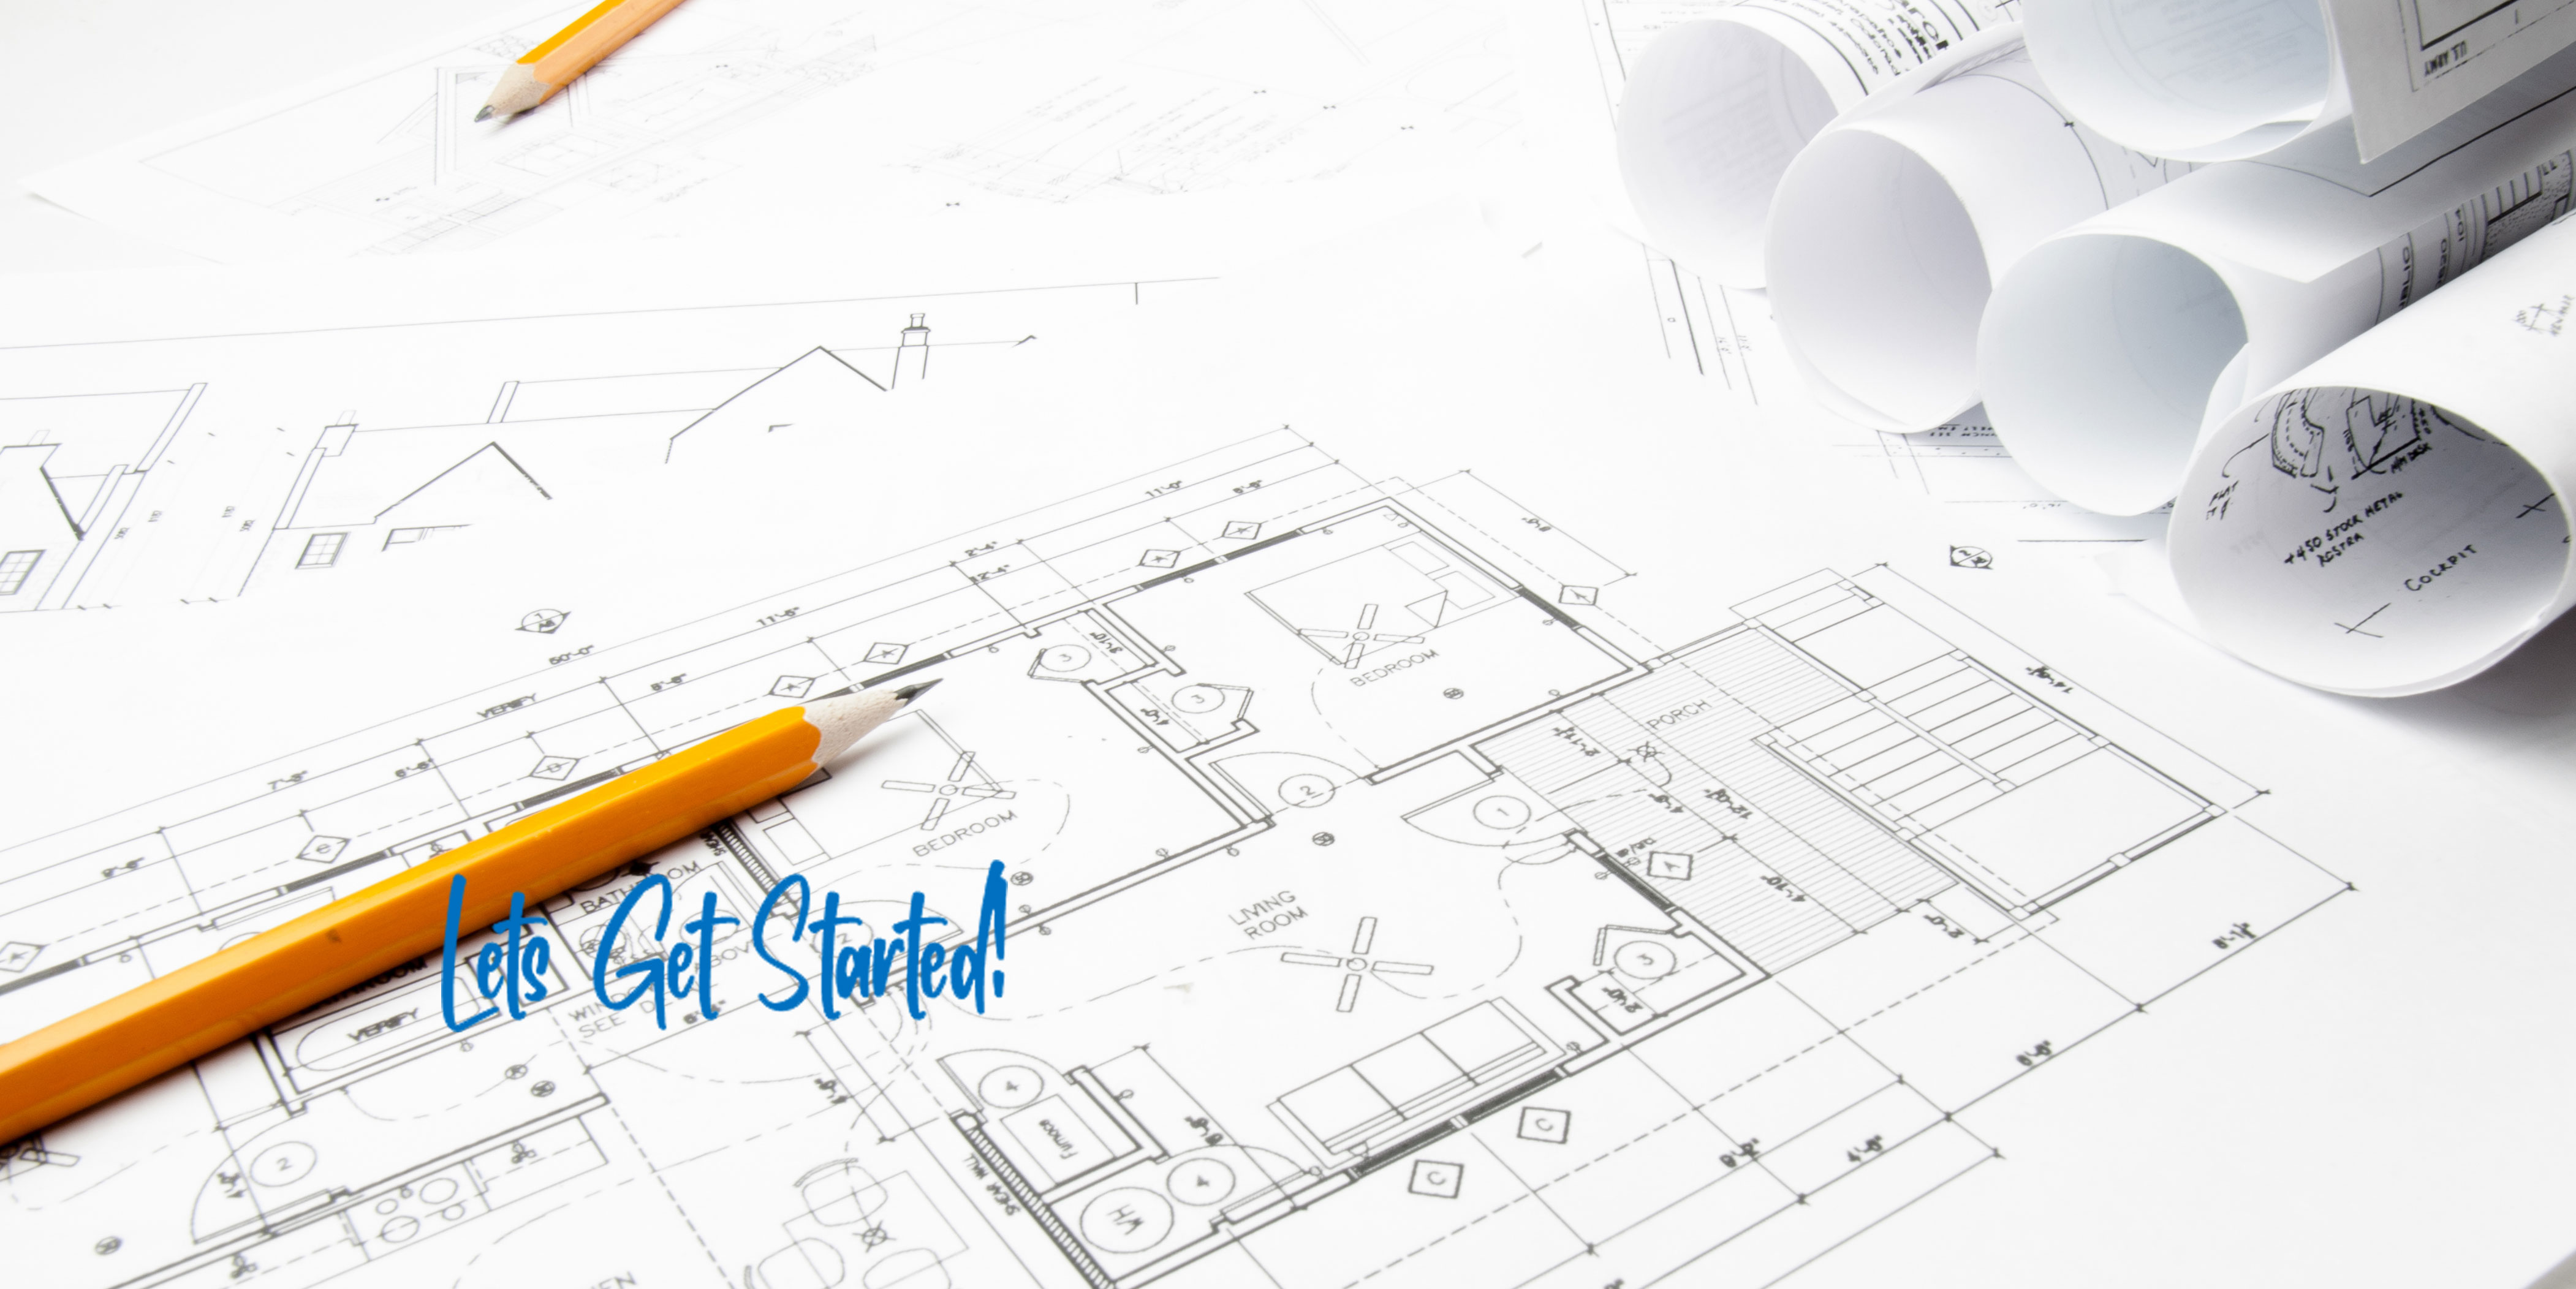 Brand New Construction Homes for Sale, Just Built Property Listings New Community Homes